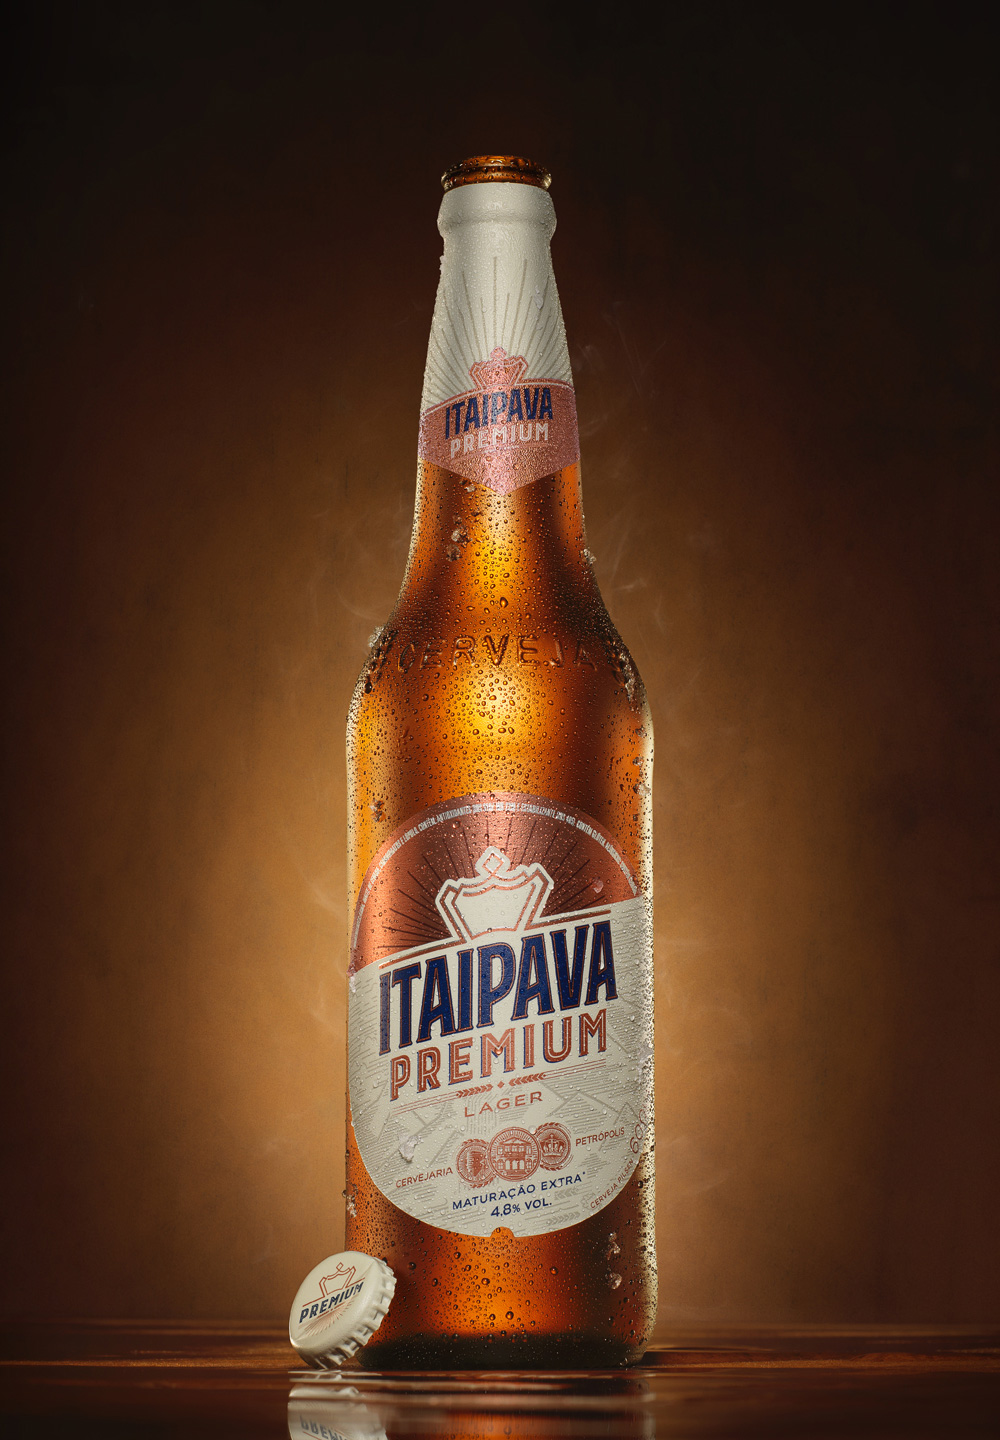 brand new new logo and packaging for itaipava premium by